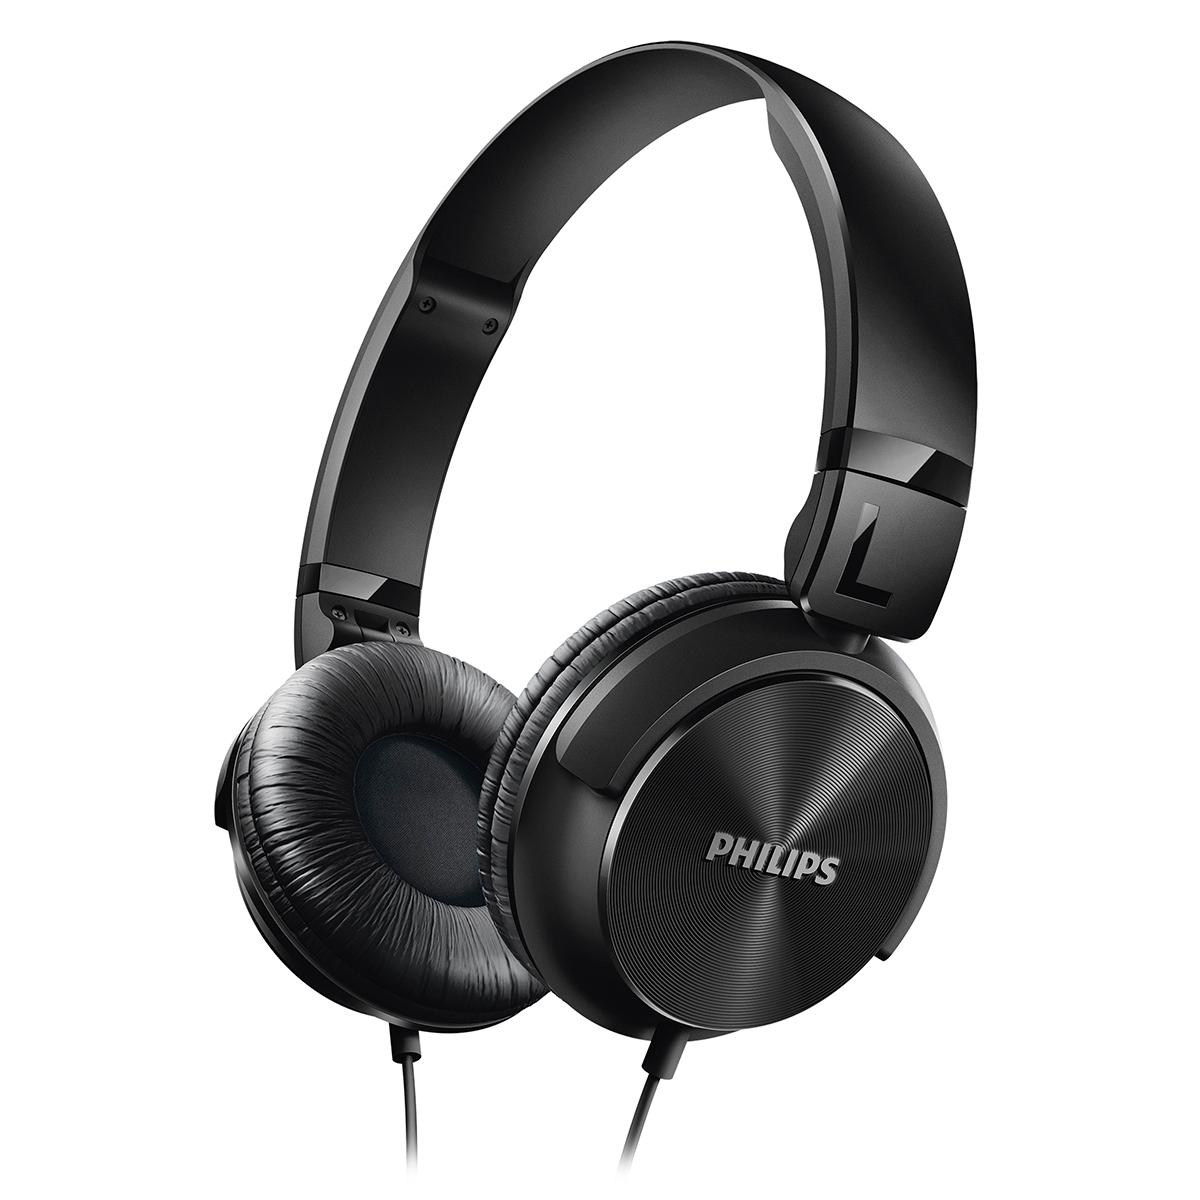 Amazon.com: Philips SHL3060BK/28 Philips SHL3060BK/28 DJ